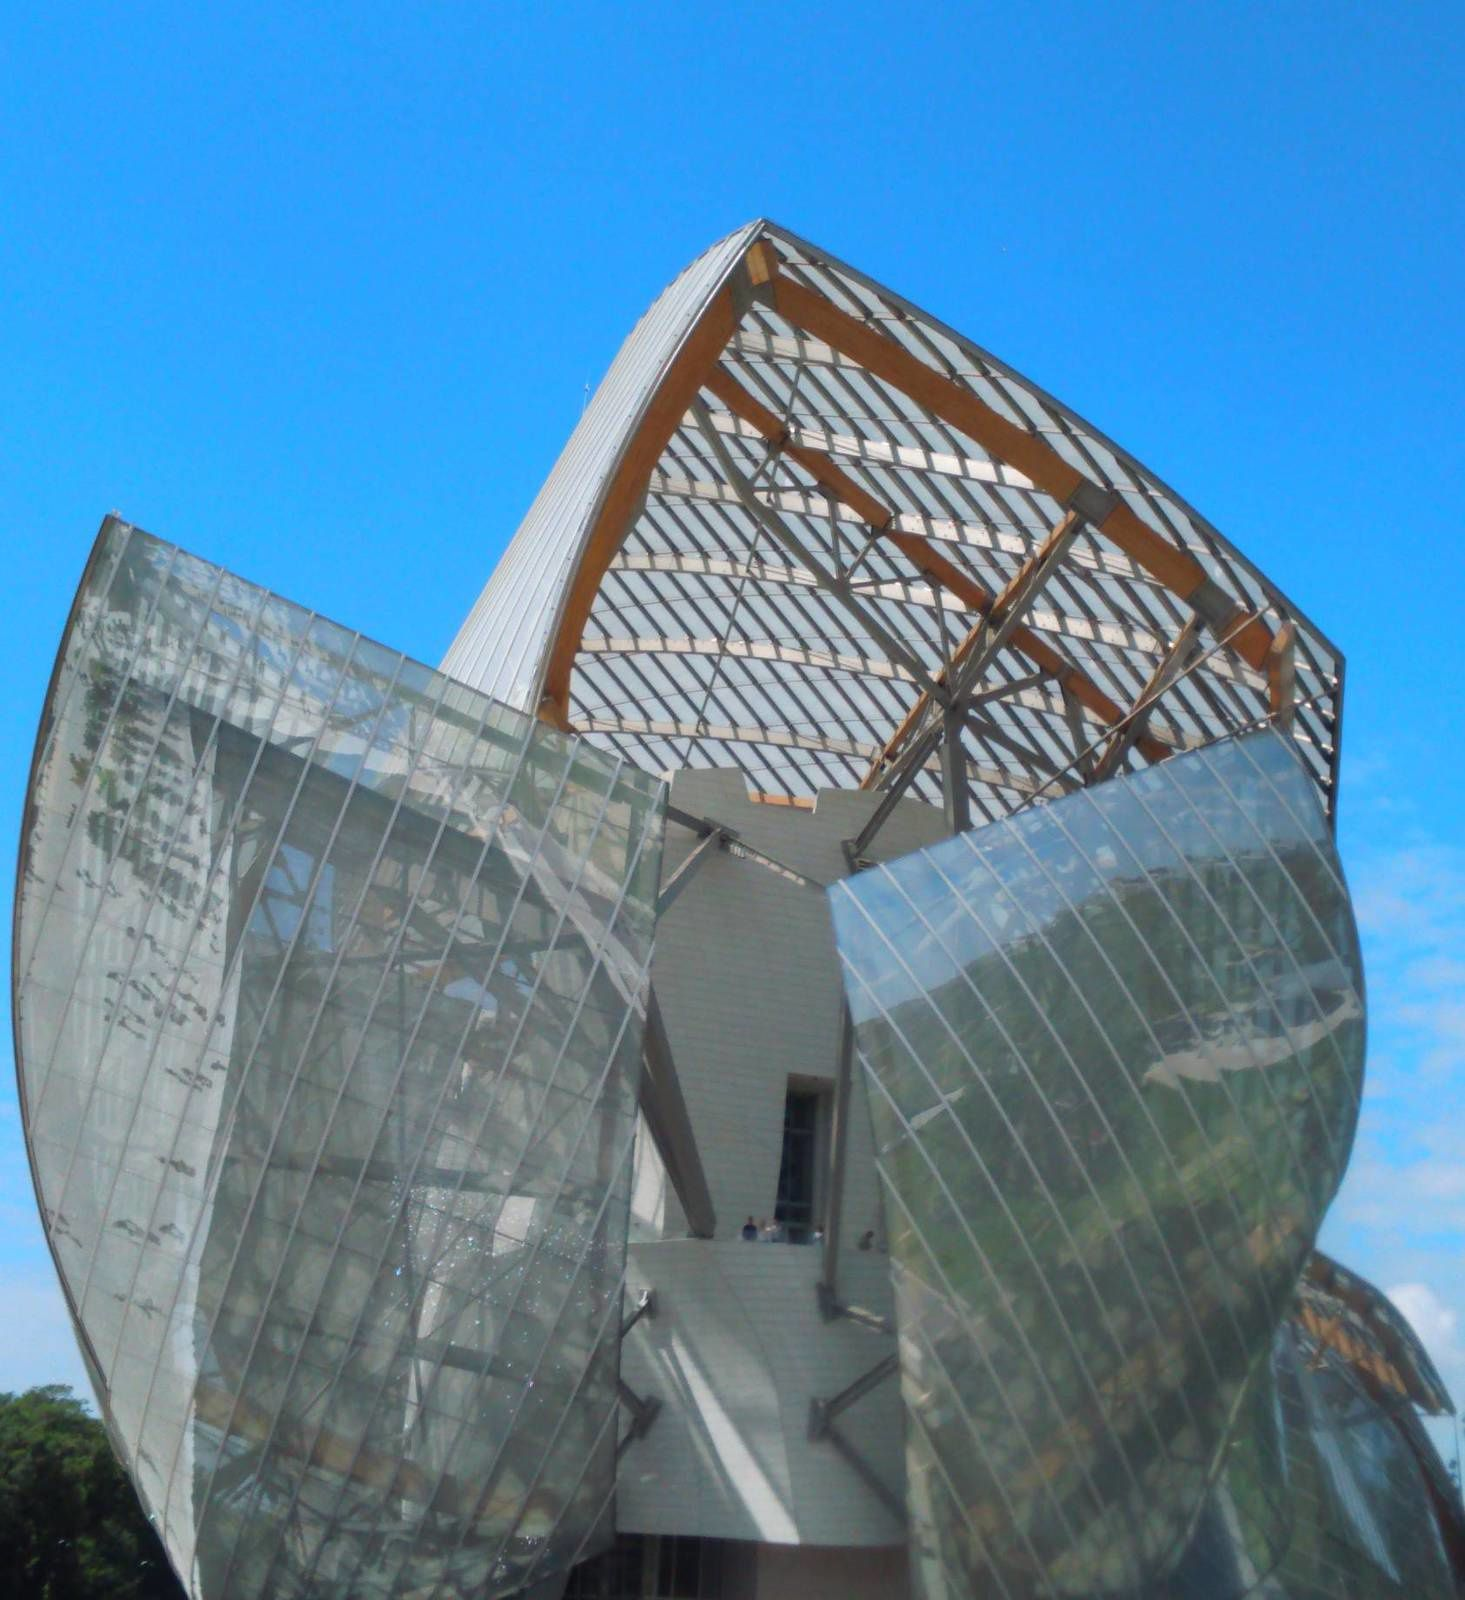 La Fondation Louis Vuitton en images